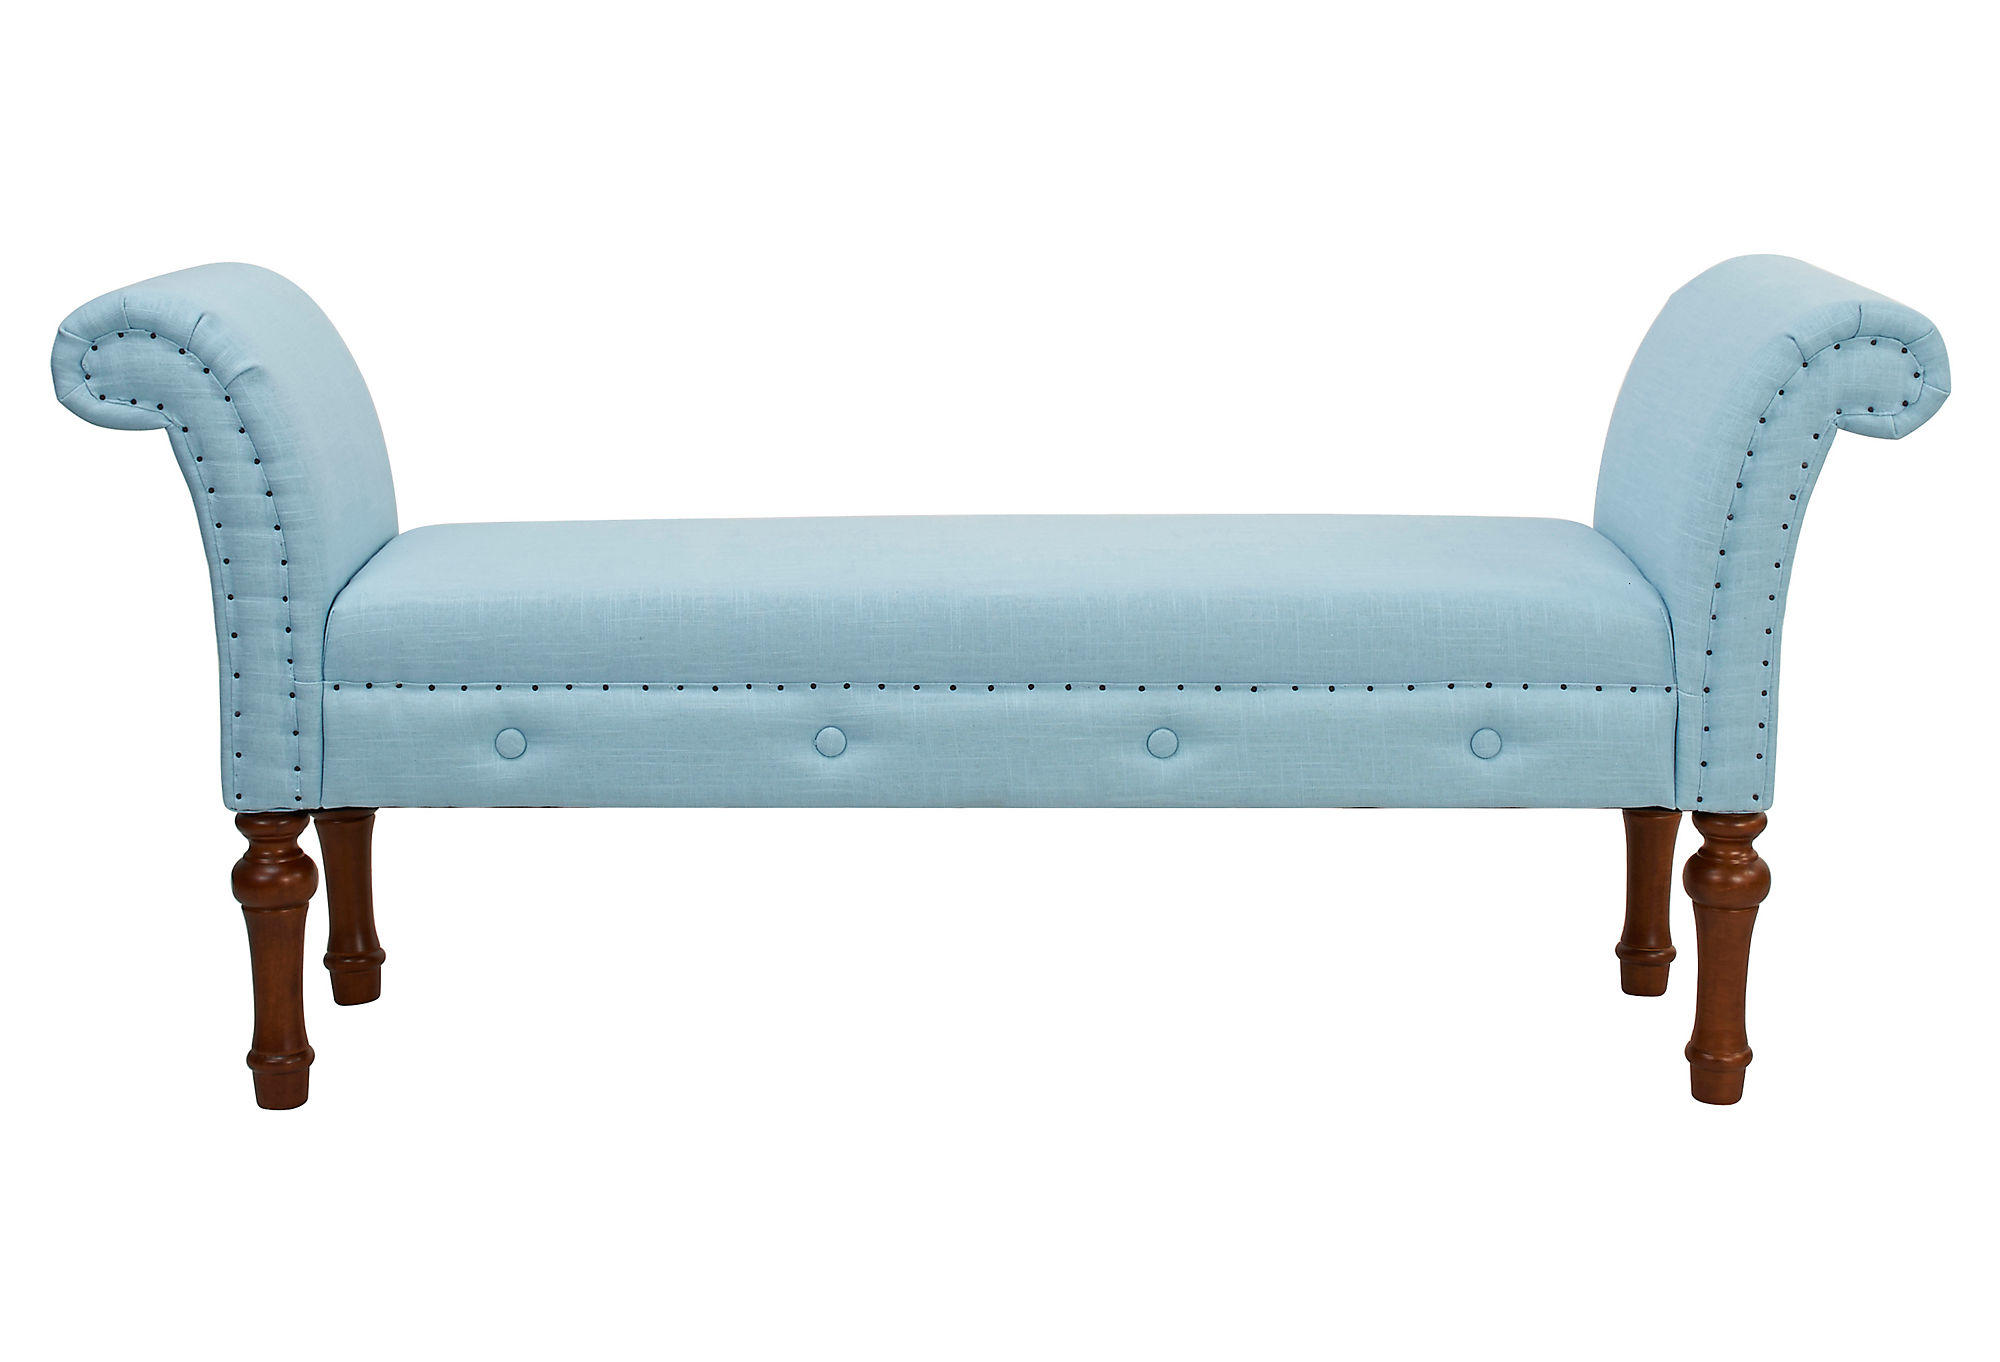 Elise Roll Arm Bench Light Blue Bedroom From One Kings Lane